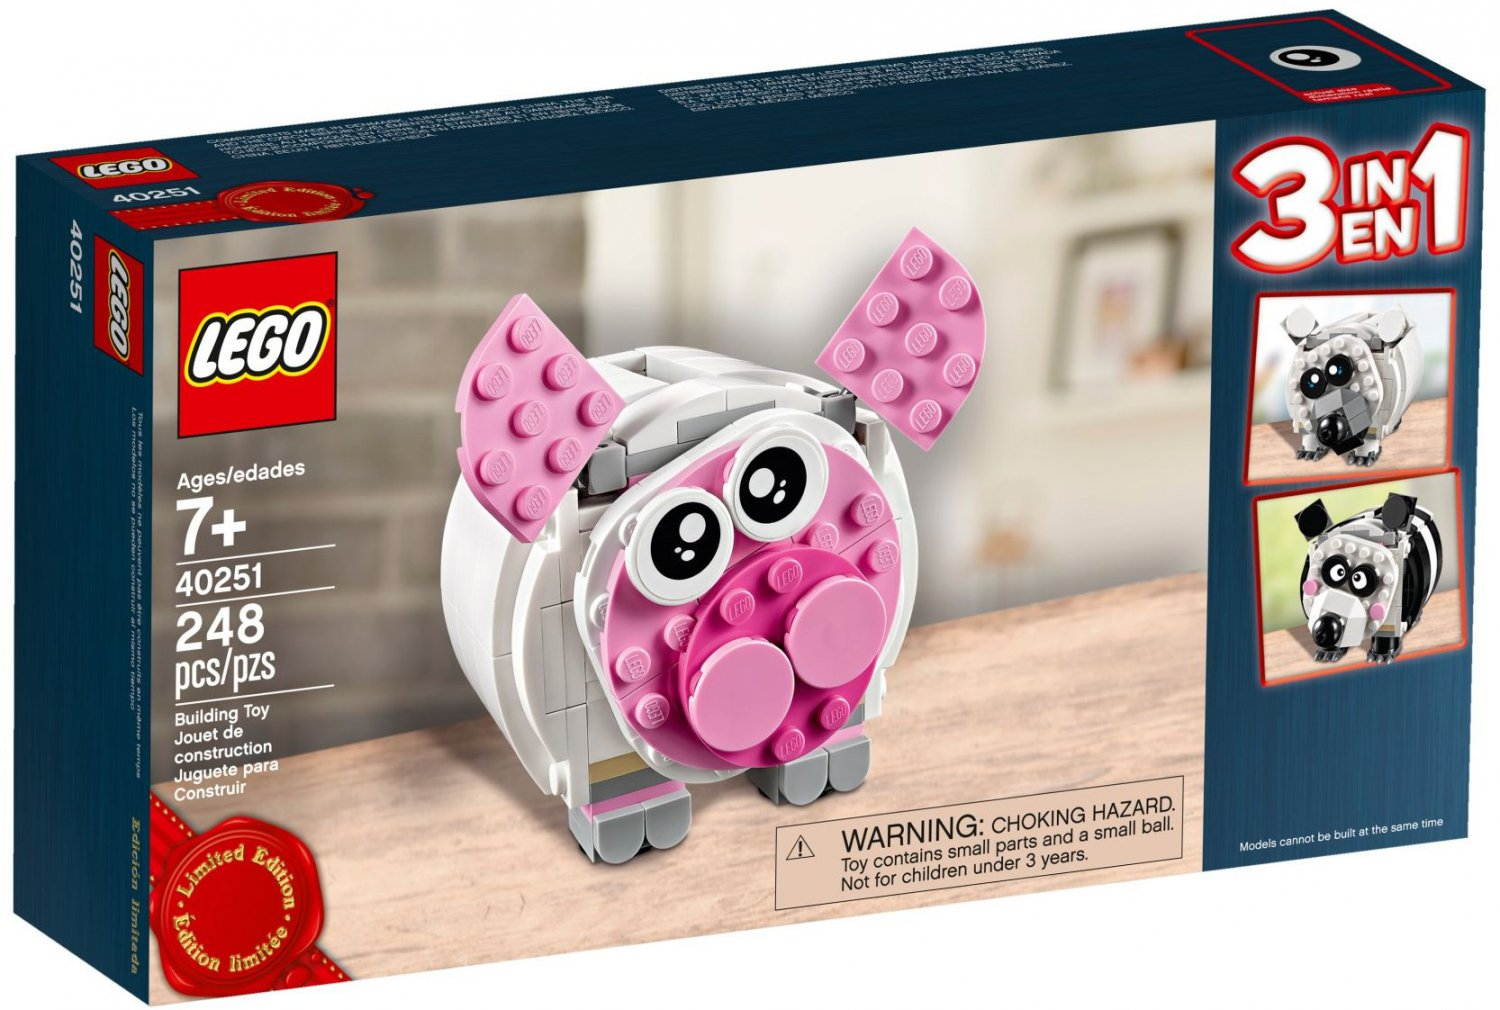 Lego 3 in 1 Piggy Bank 40251 (2017)  New! Factory Sealed Set! Limited Exclusive